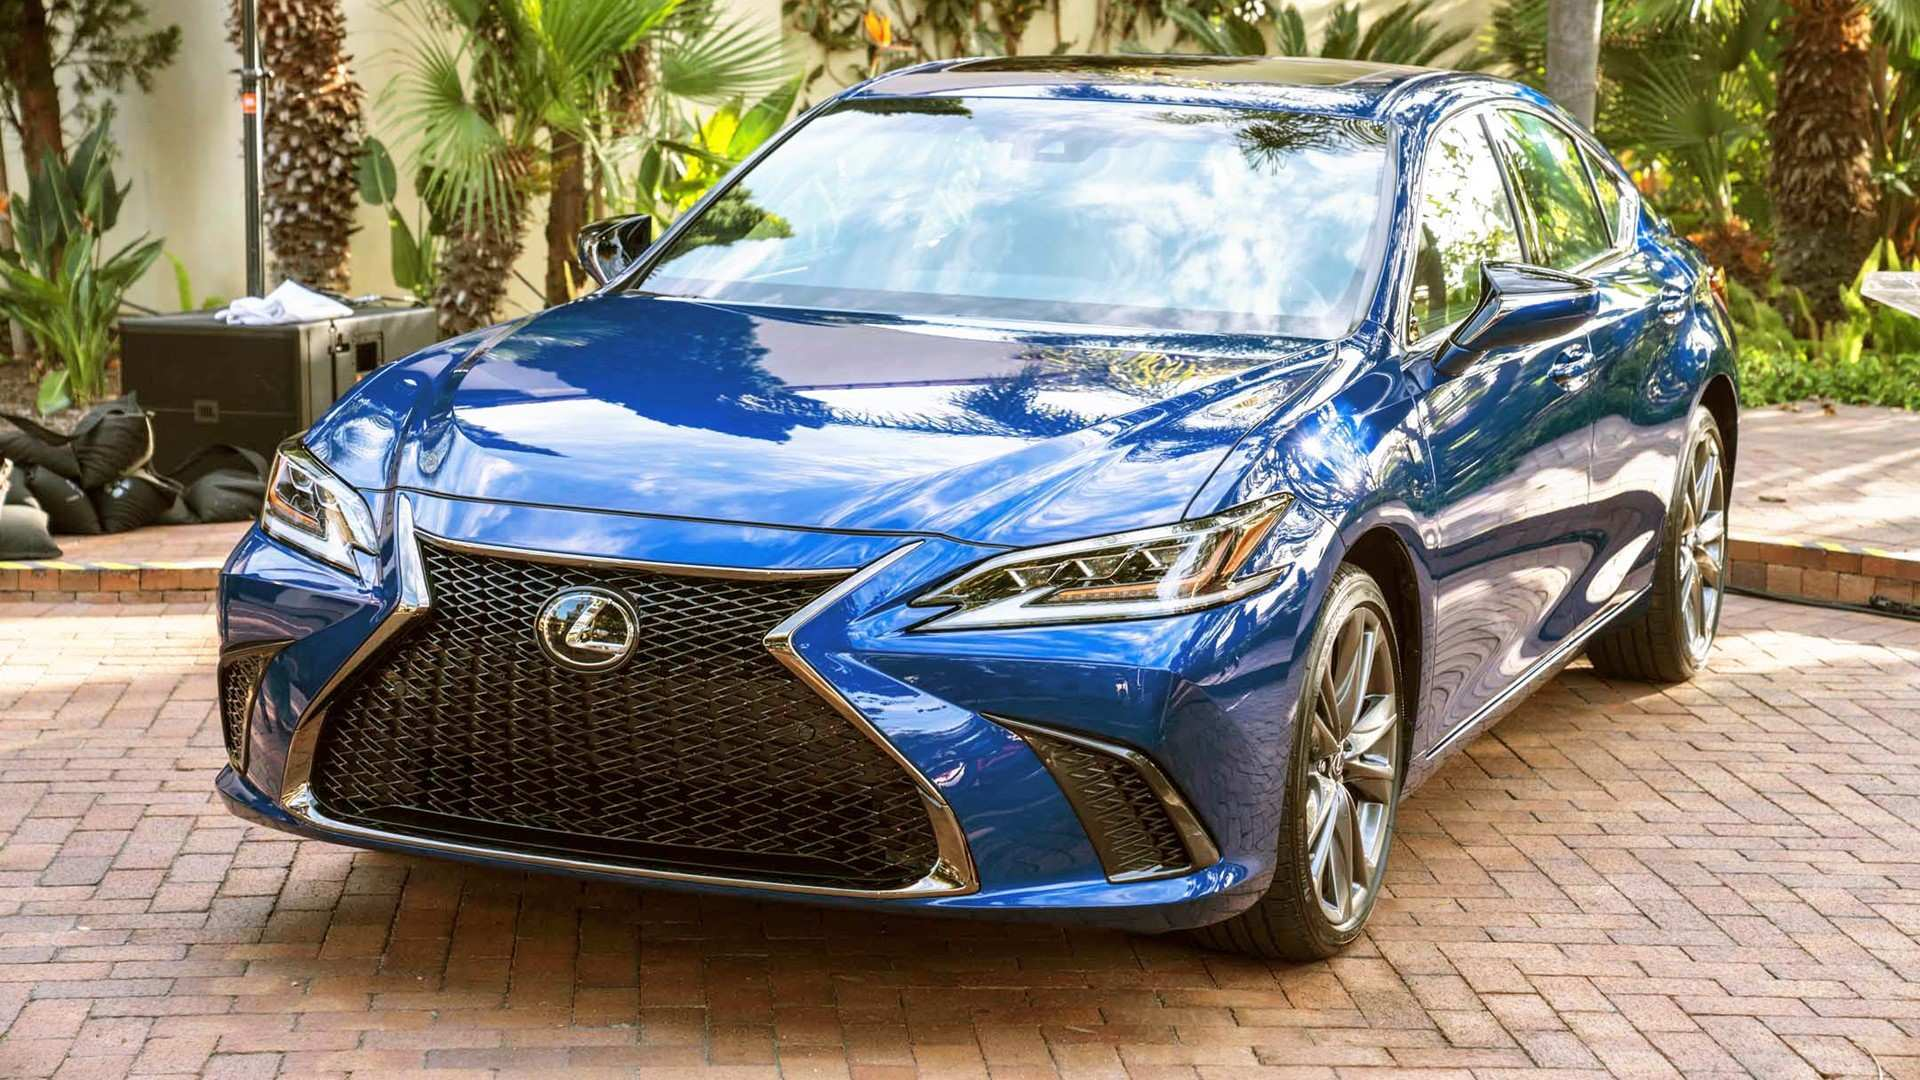 59 Gallery of 2019 Lexus Es 350 Awd Ratings with 2019 Lexus Es 350 Awd